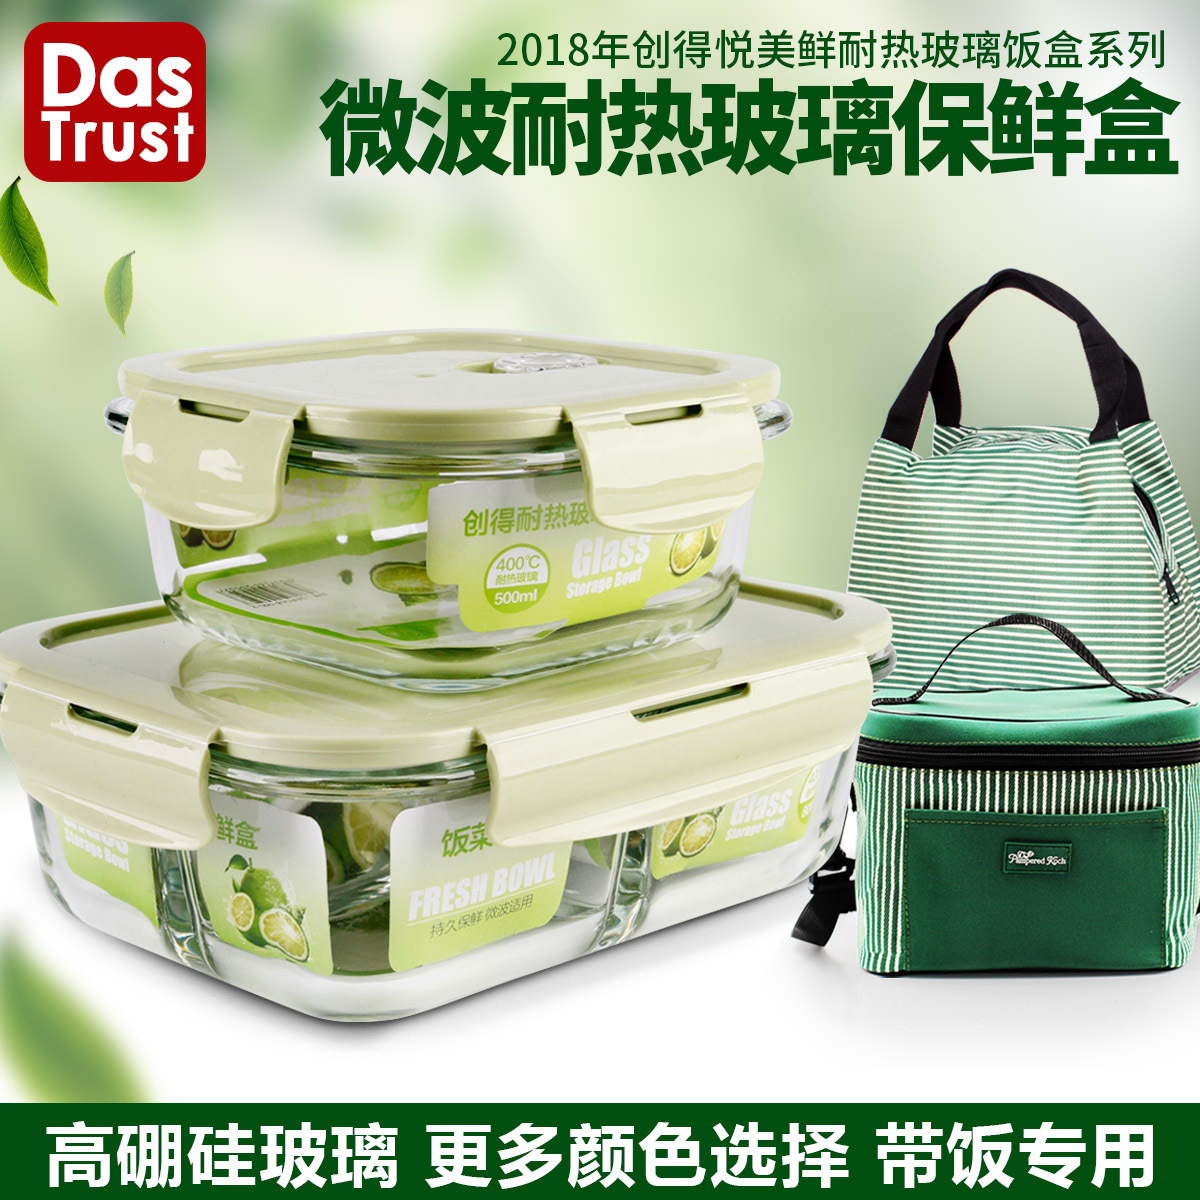 Chuang De Heat-resistant Glass Container Microwave Oven For Freshness Box Storage With Cover Glass Bowl Set